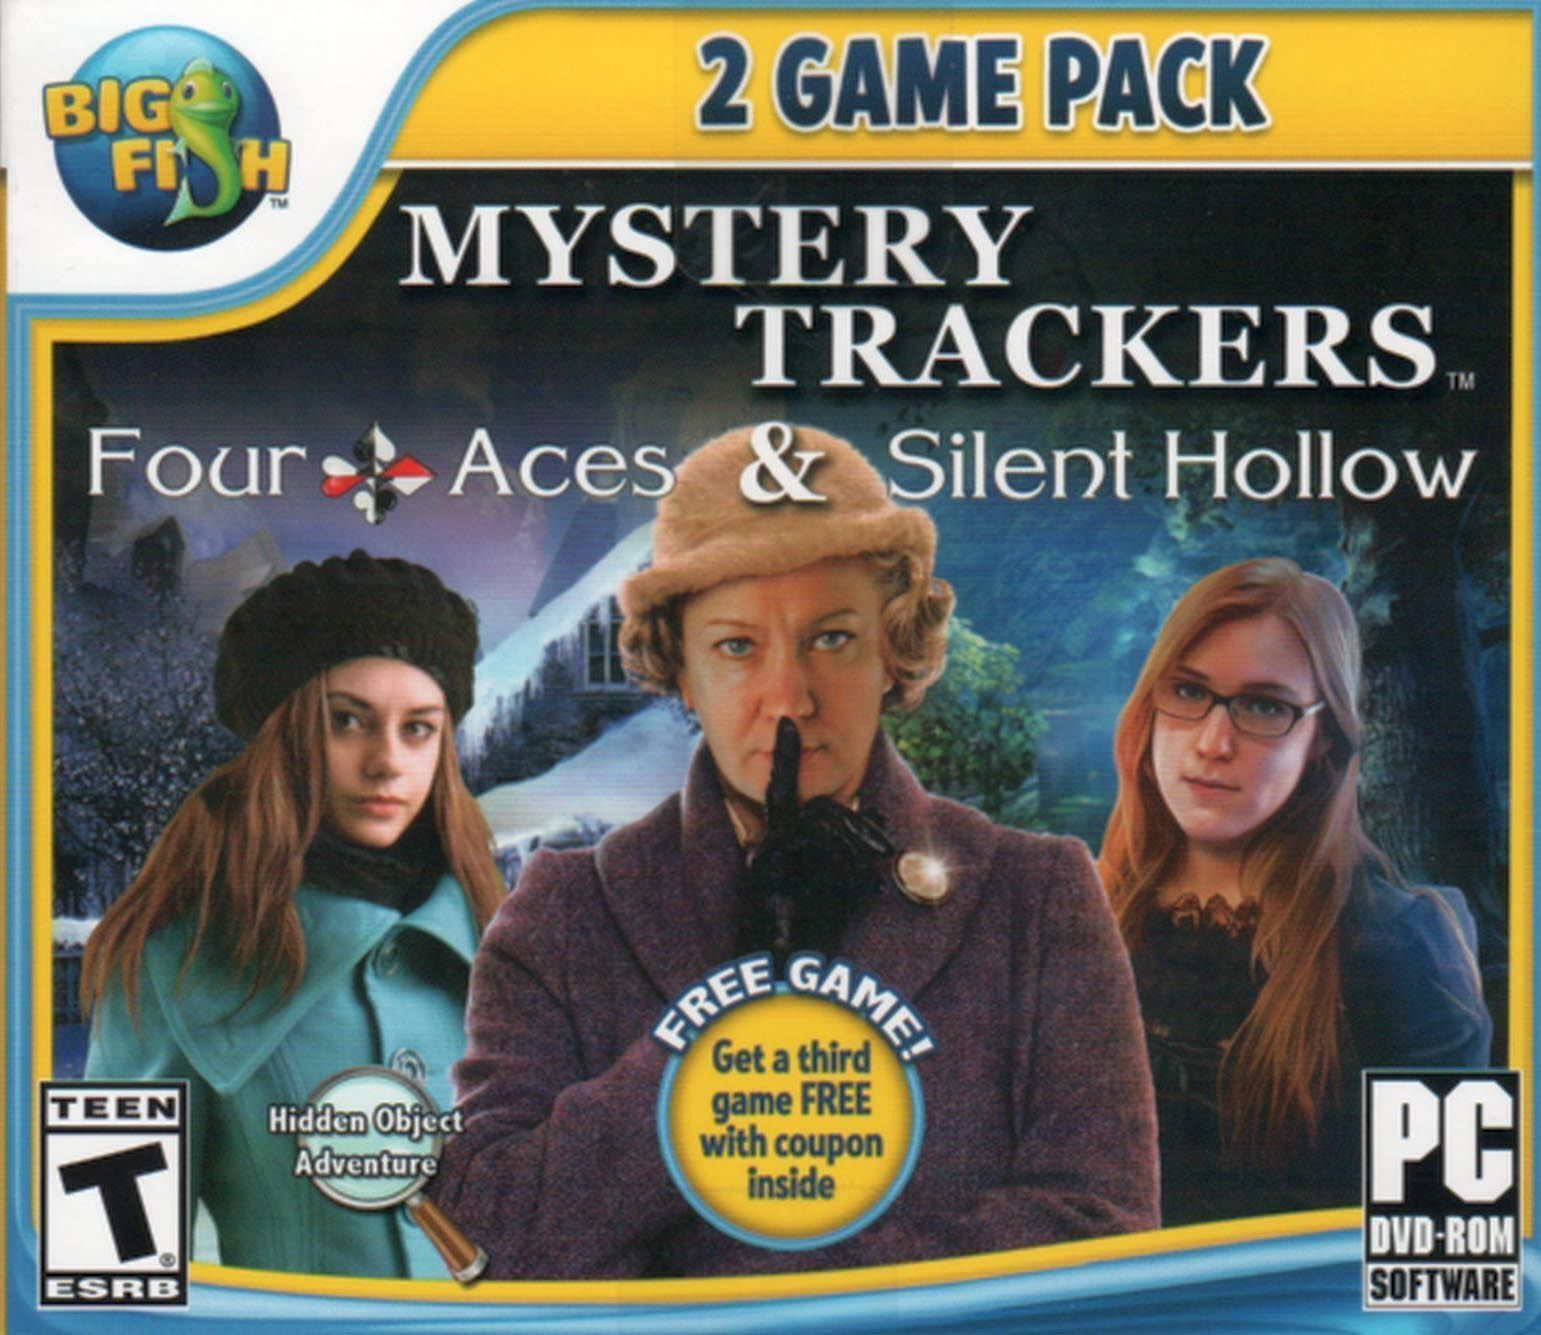 Computer Games - Mystery Trackers Four Aces & Silent Hollow PC Games Windows 10 8 7 XP Computer